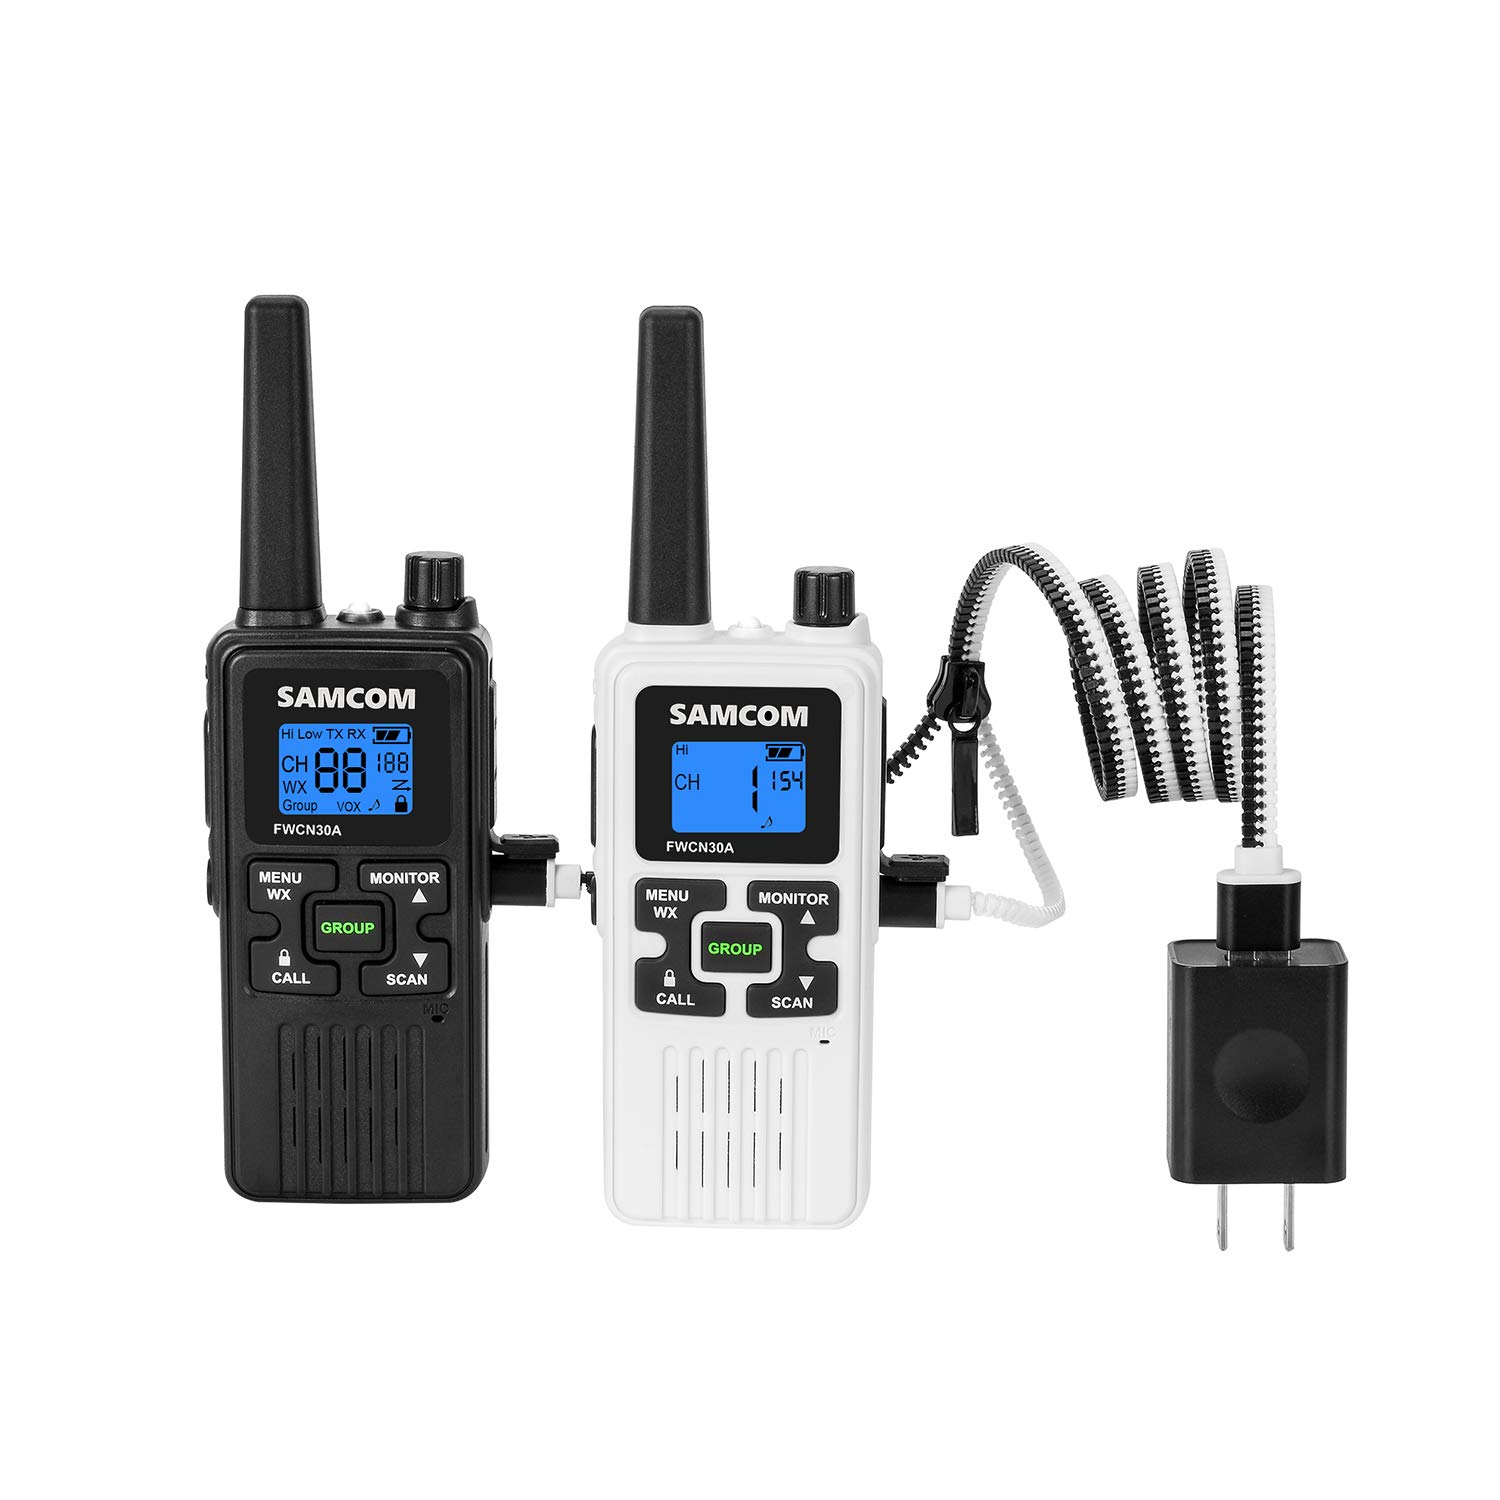 FRS Two Way Radio 22CH with 1250mAh Rechargeable Battery LCD Display LED Flashlight, License Free Walkie Talkies 36 Miles Long Range with Group VOX SCAN NOAA Call Alert Function(Black+White) by SAMCOM